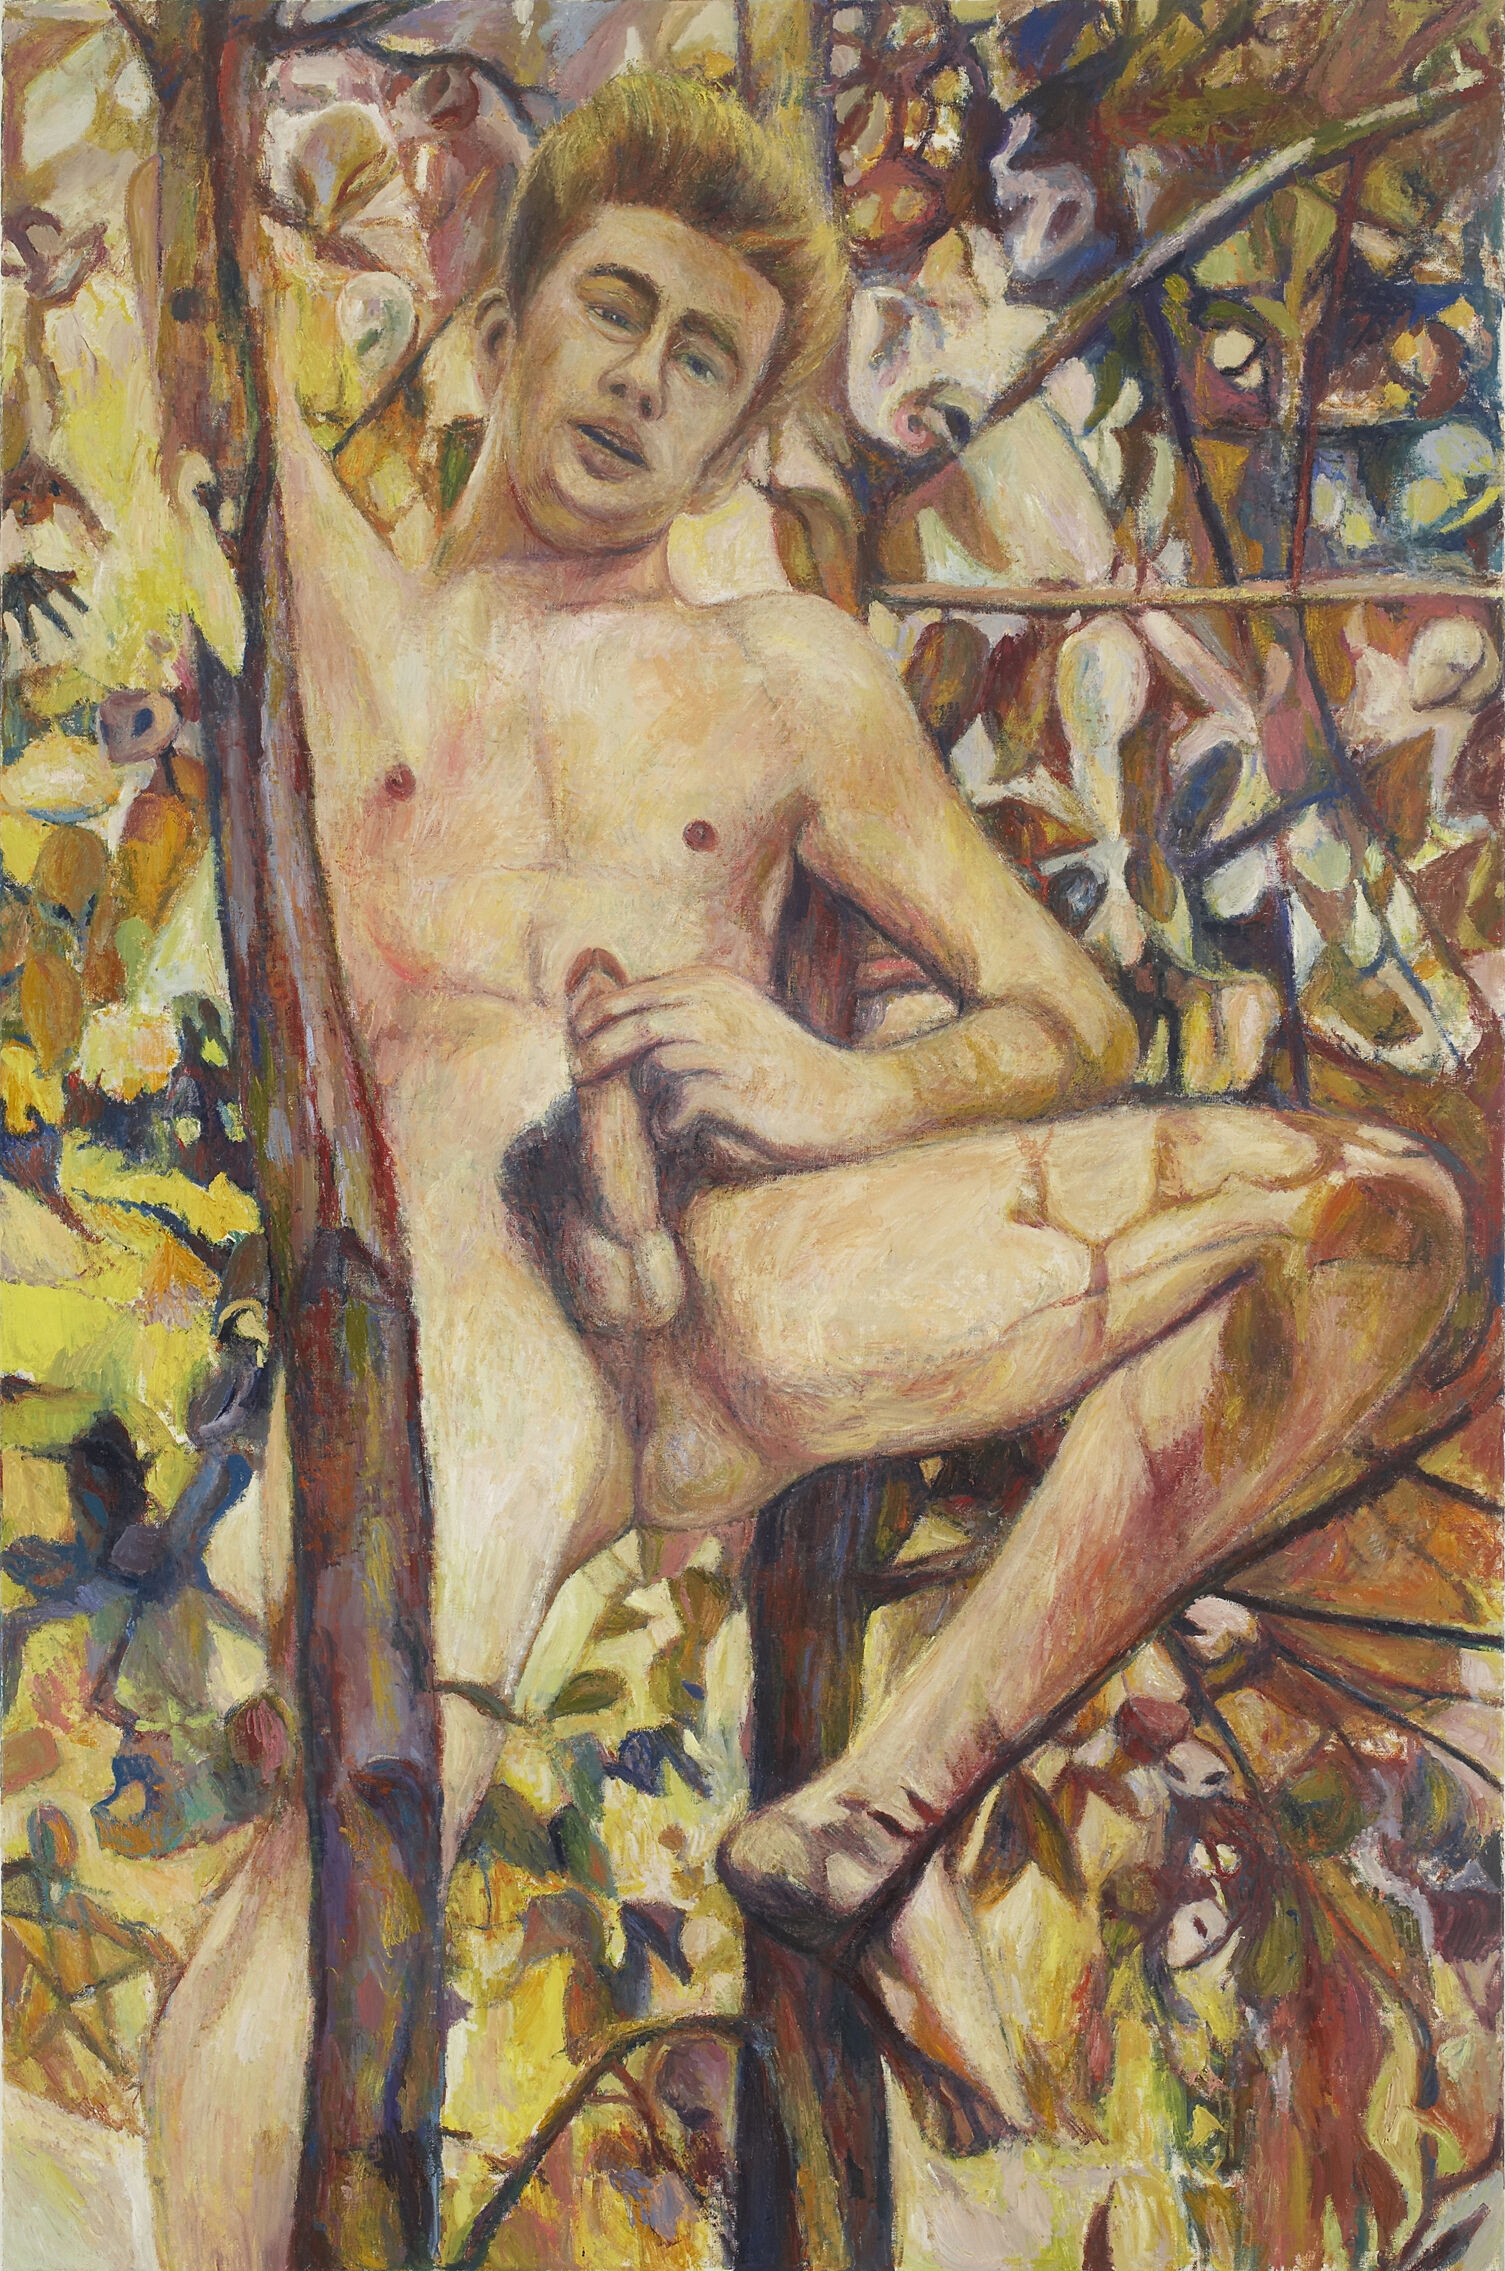 A painting of a naked man in a tree.